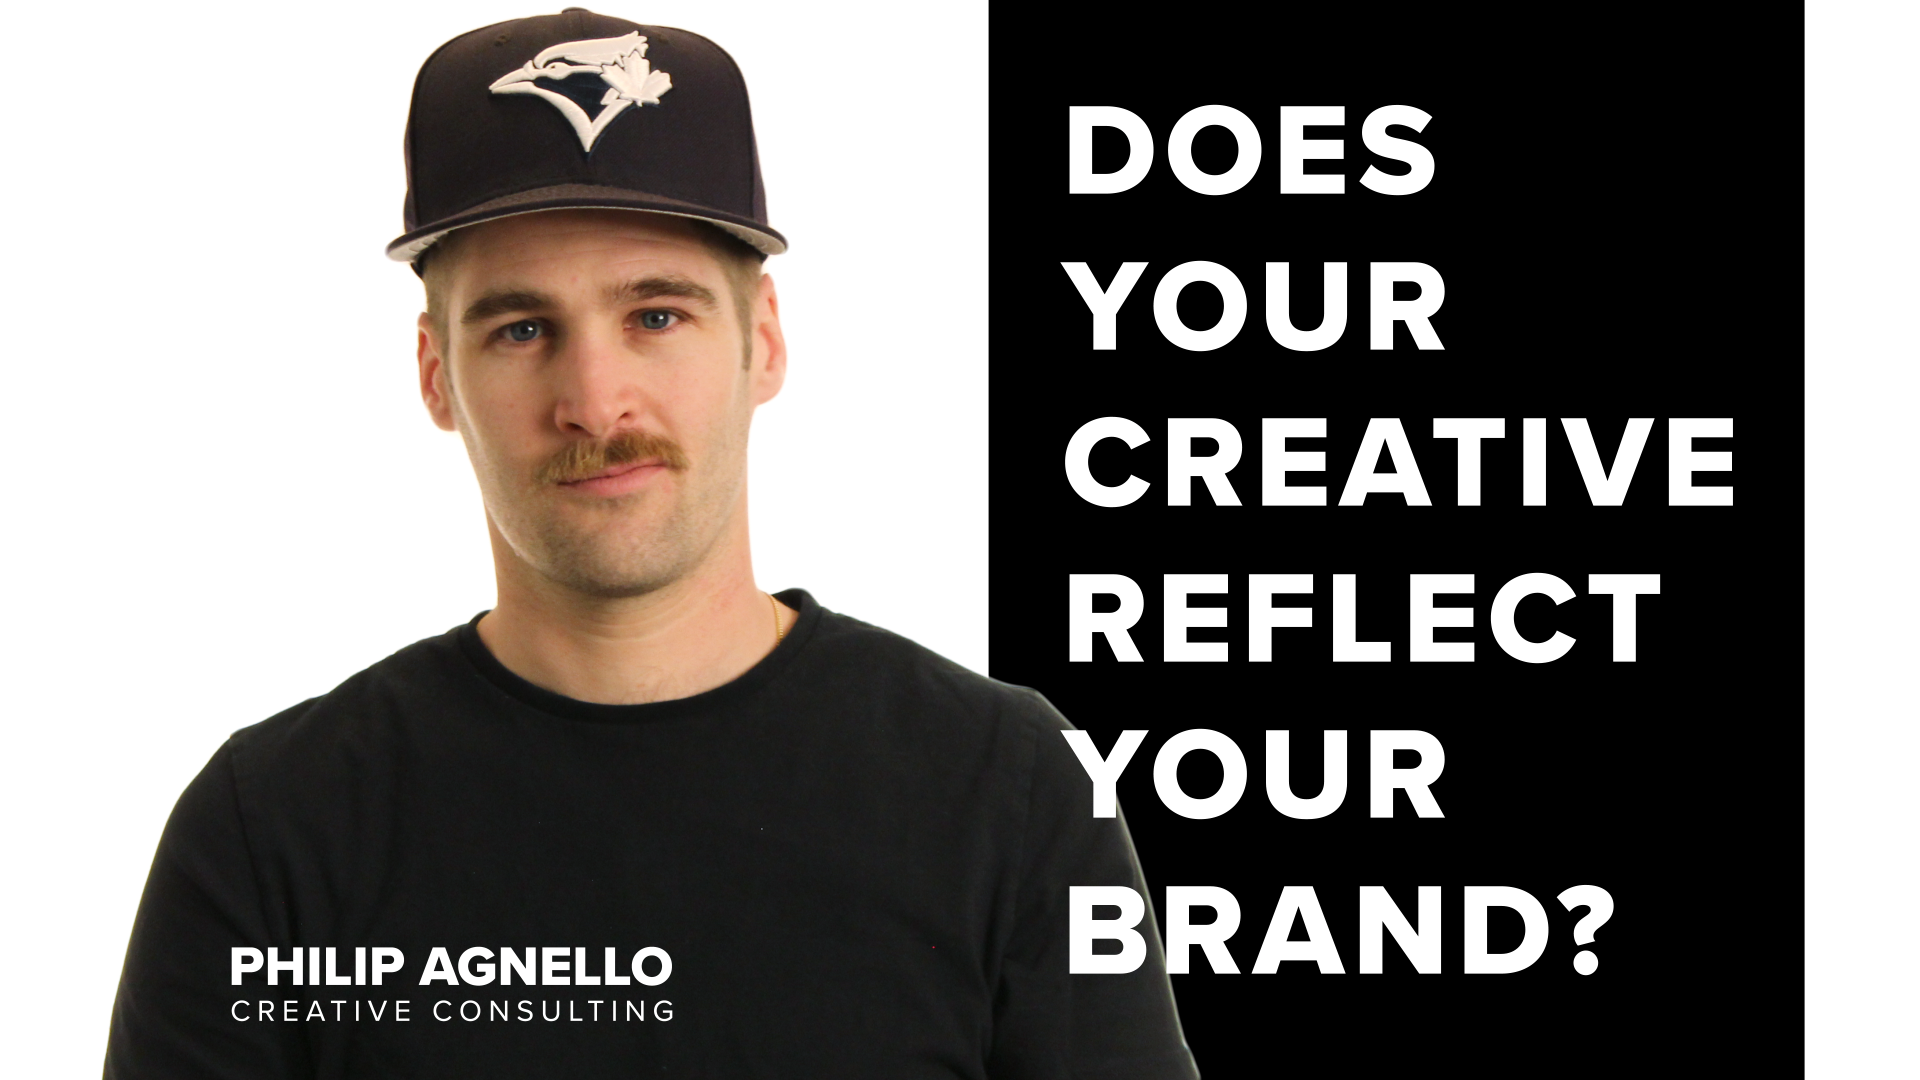 Title: Does Your Creative Reflect Your Brand